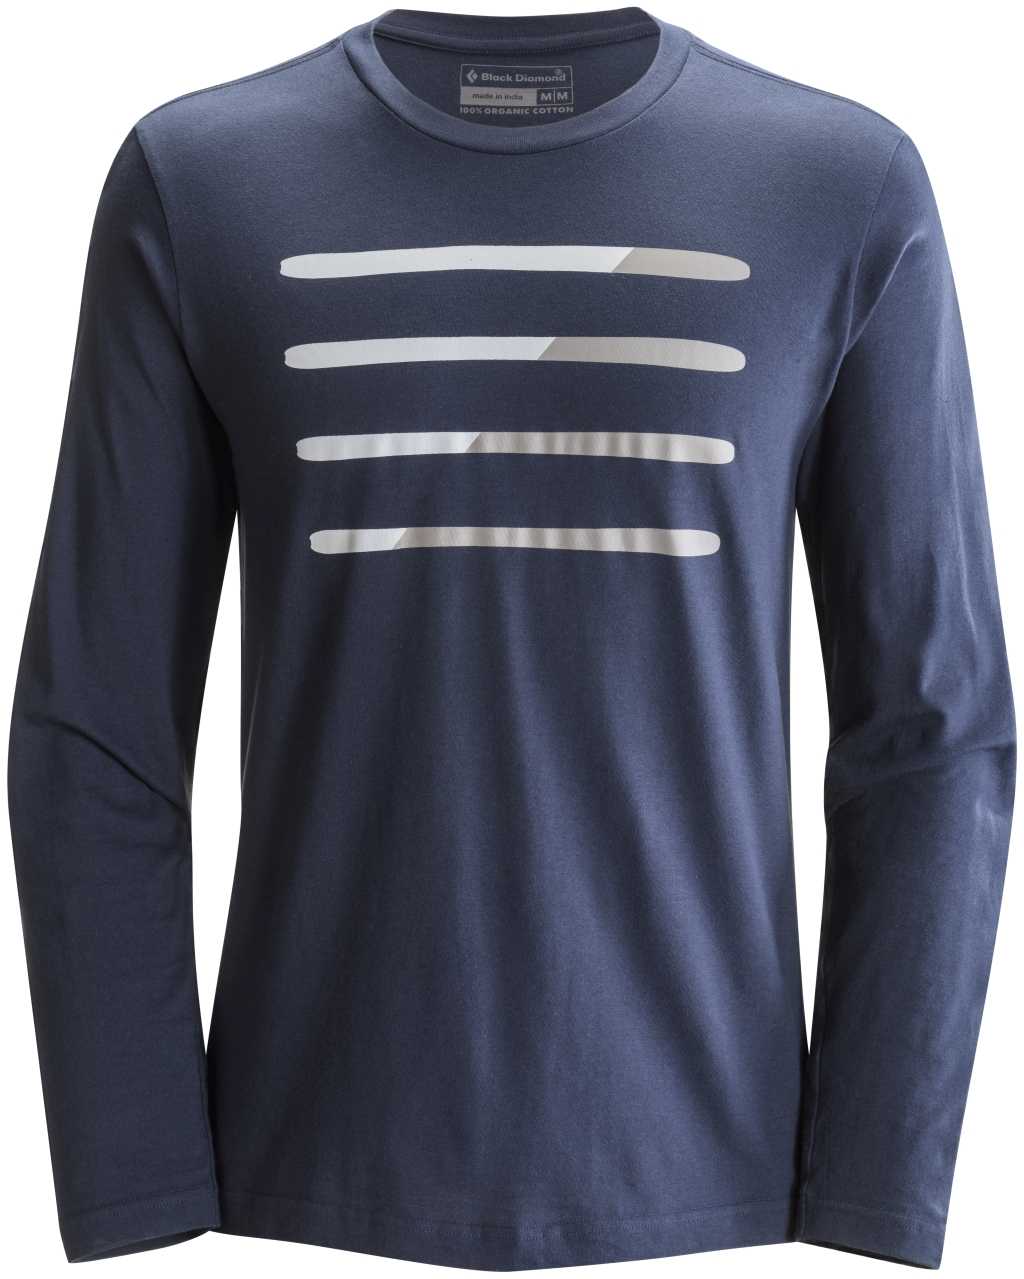 Black Diamond Long-Sleeve Ski Tee Captain-30